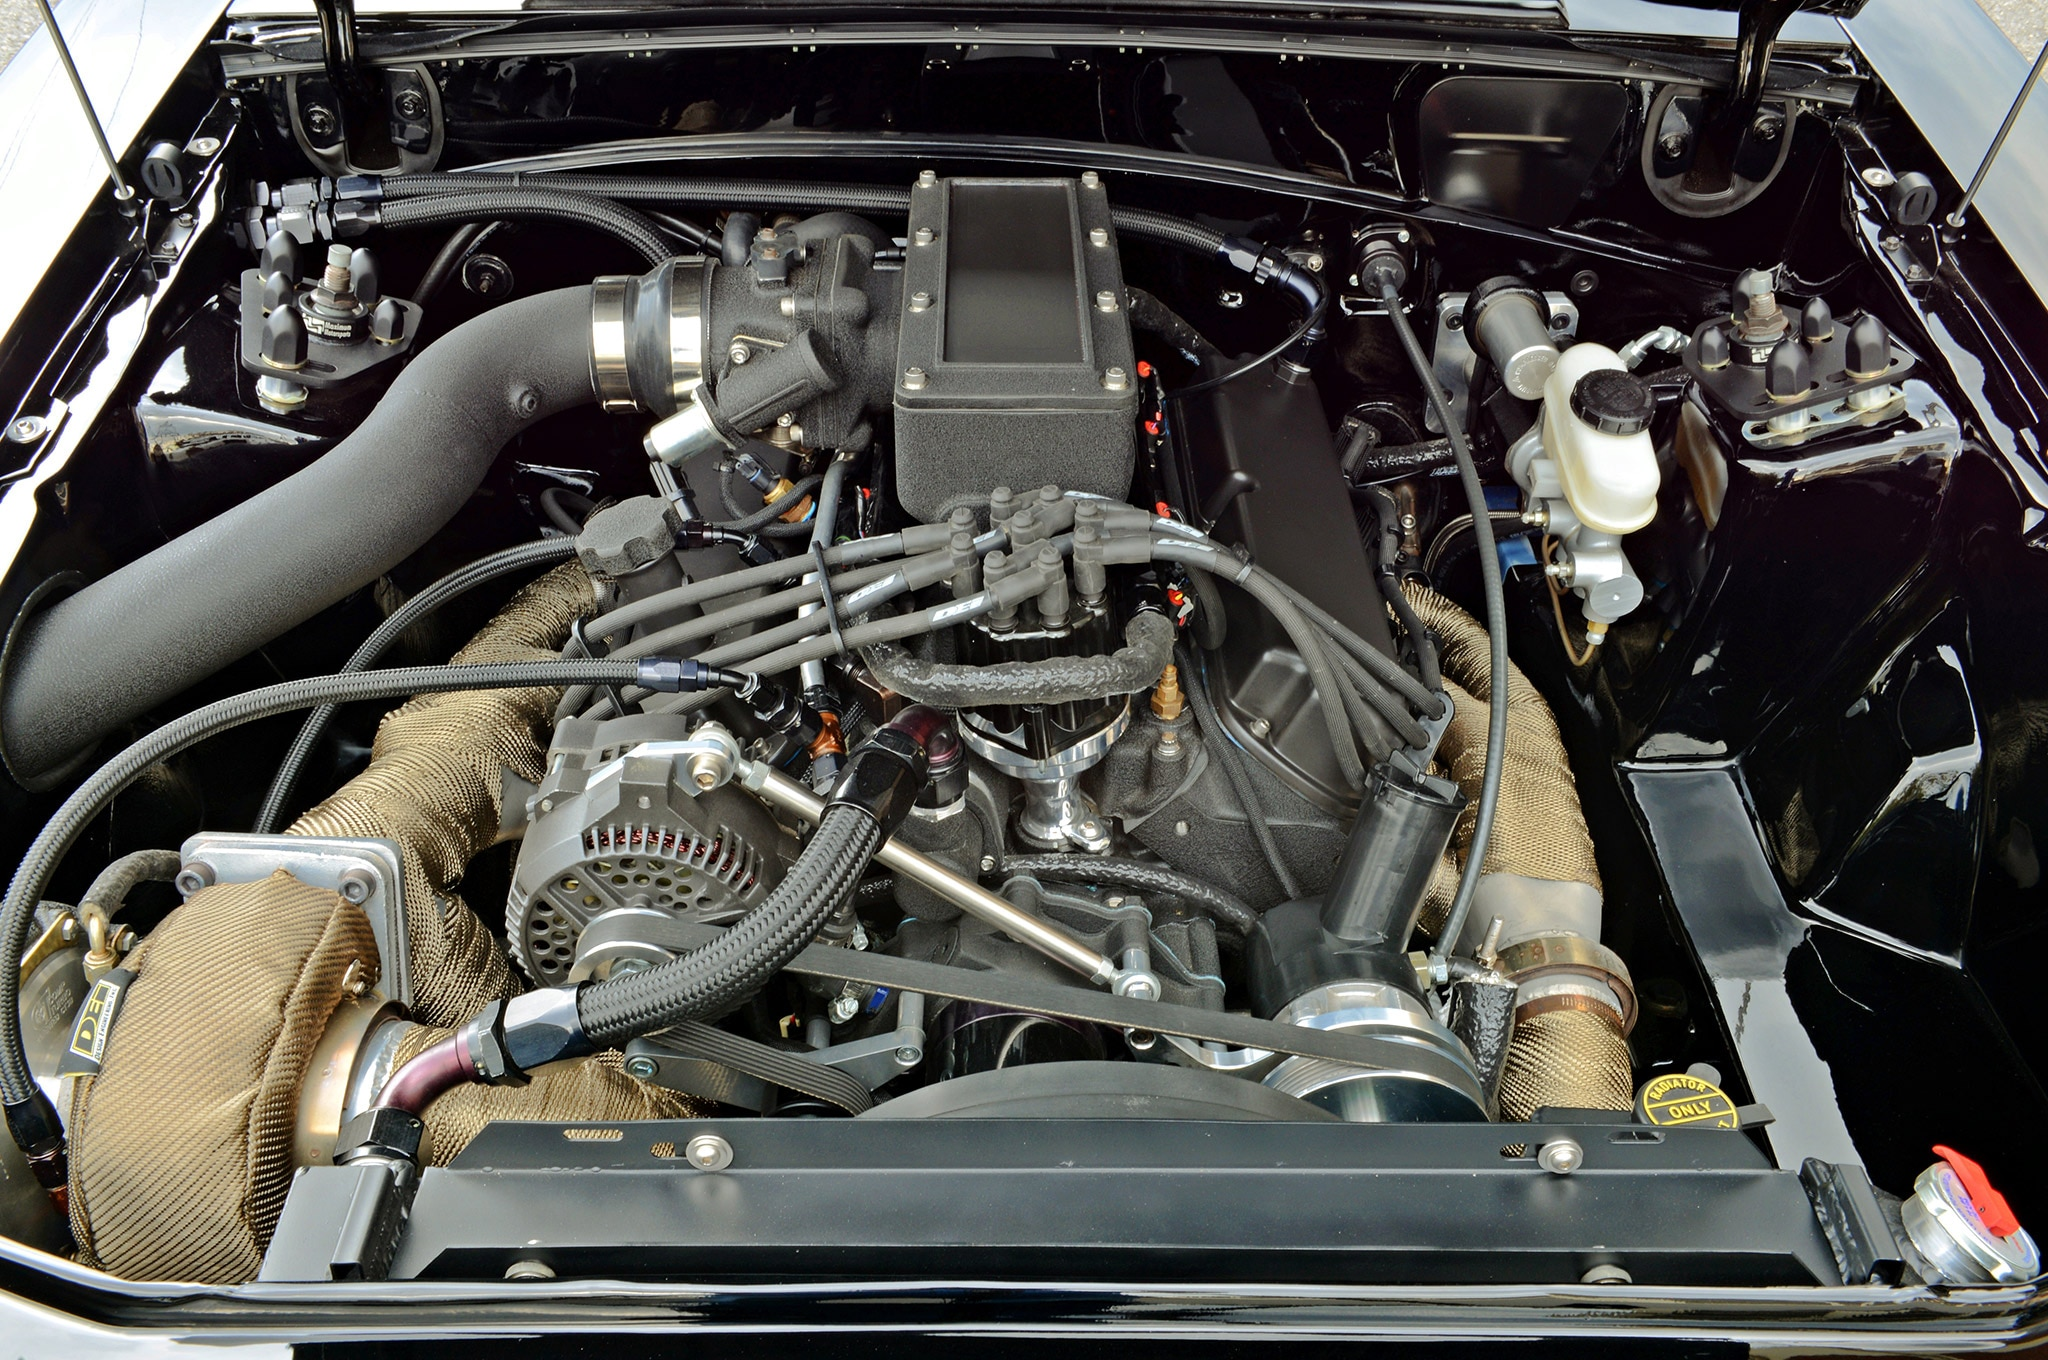 Scott 1988 Ford Mustang Gt Hartrick Gt Engine Front